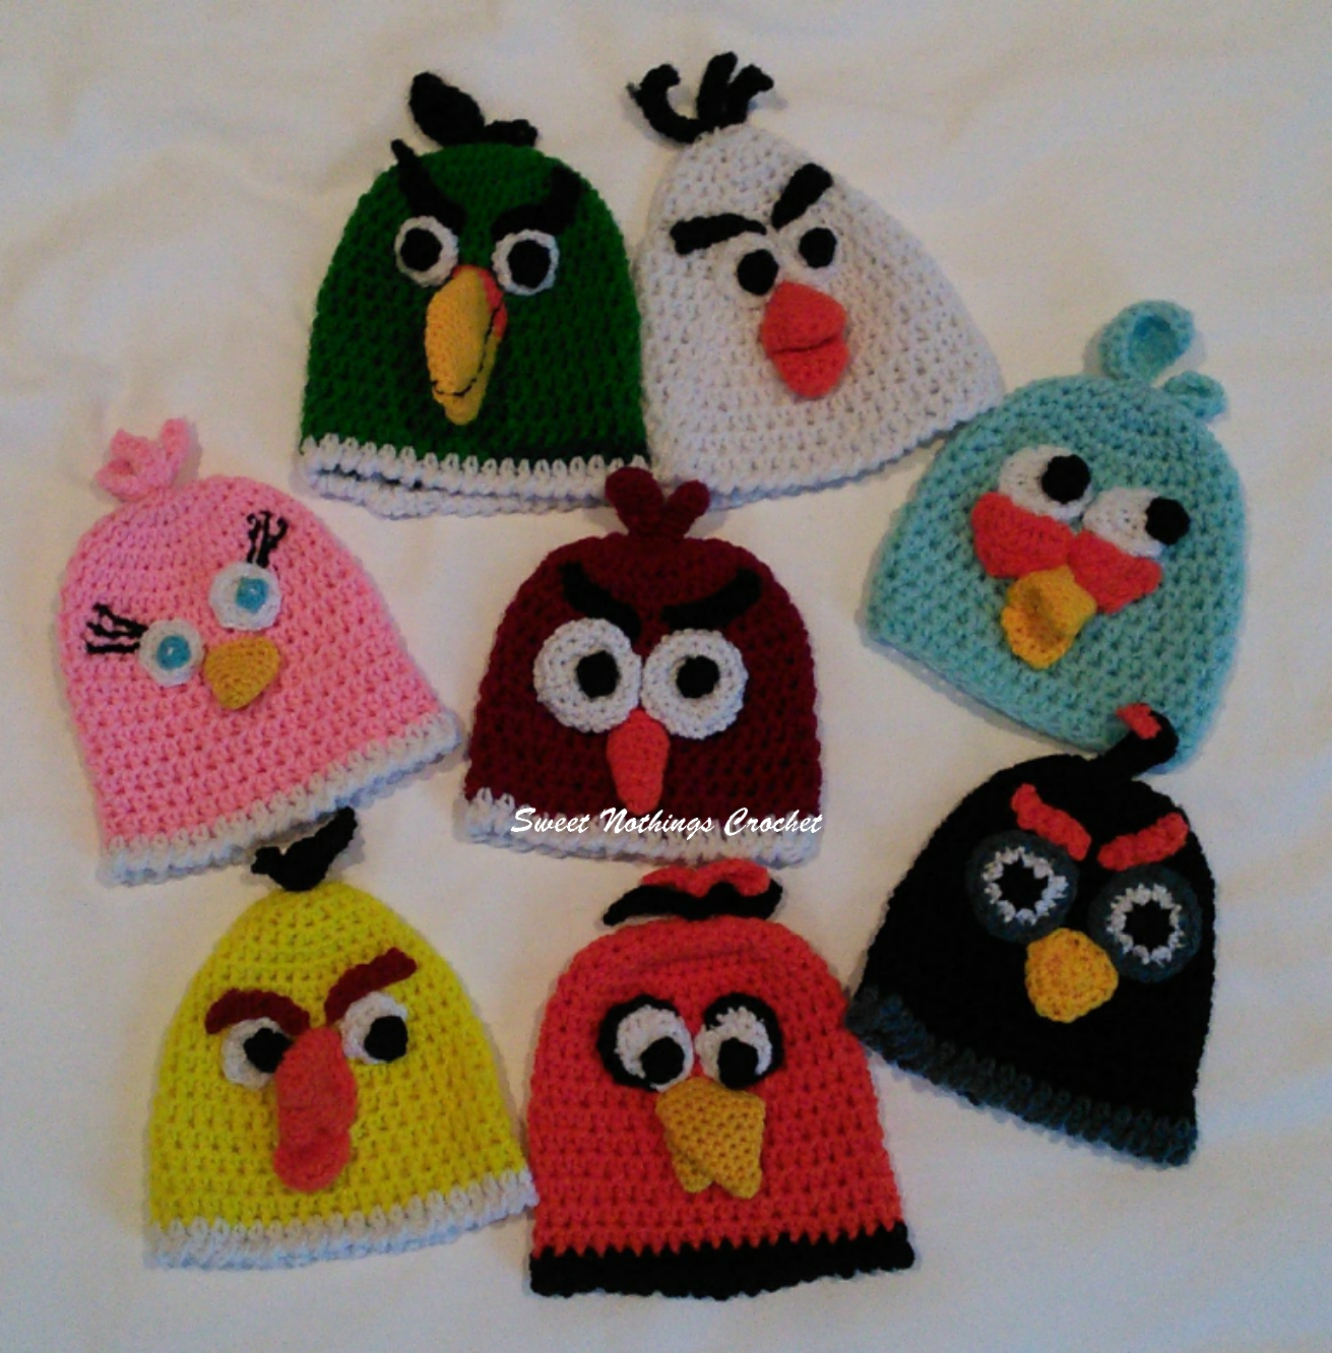 Sweet Nothings Crochet  PREEMIE CAPS 10   CHUCK – Yellow Angry Bird 4a8d47914223